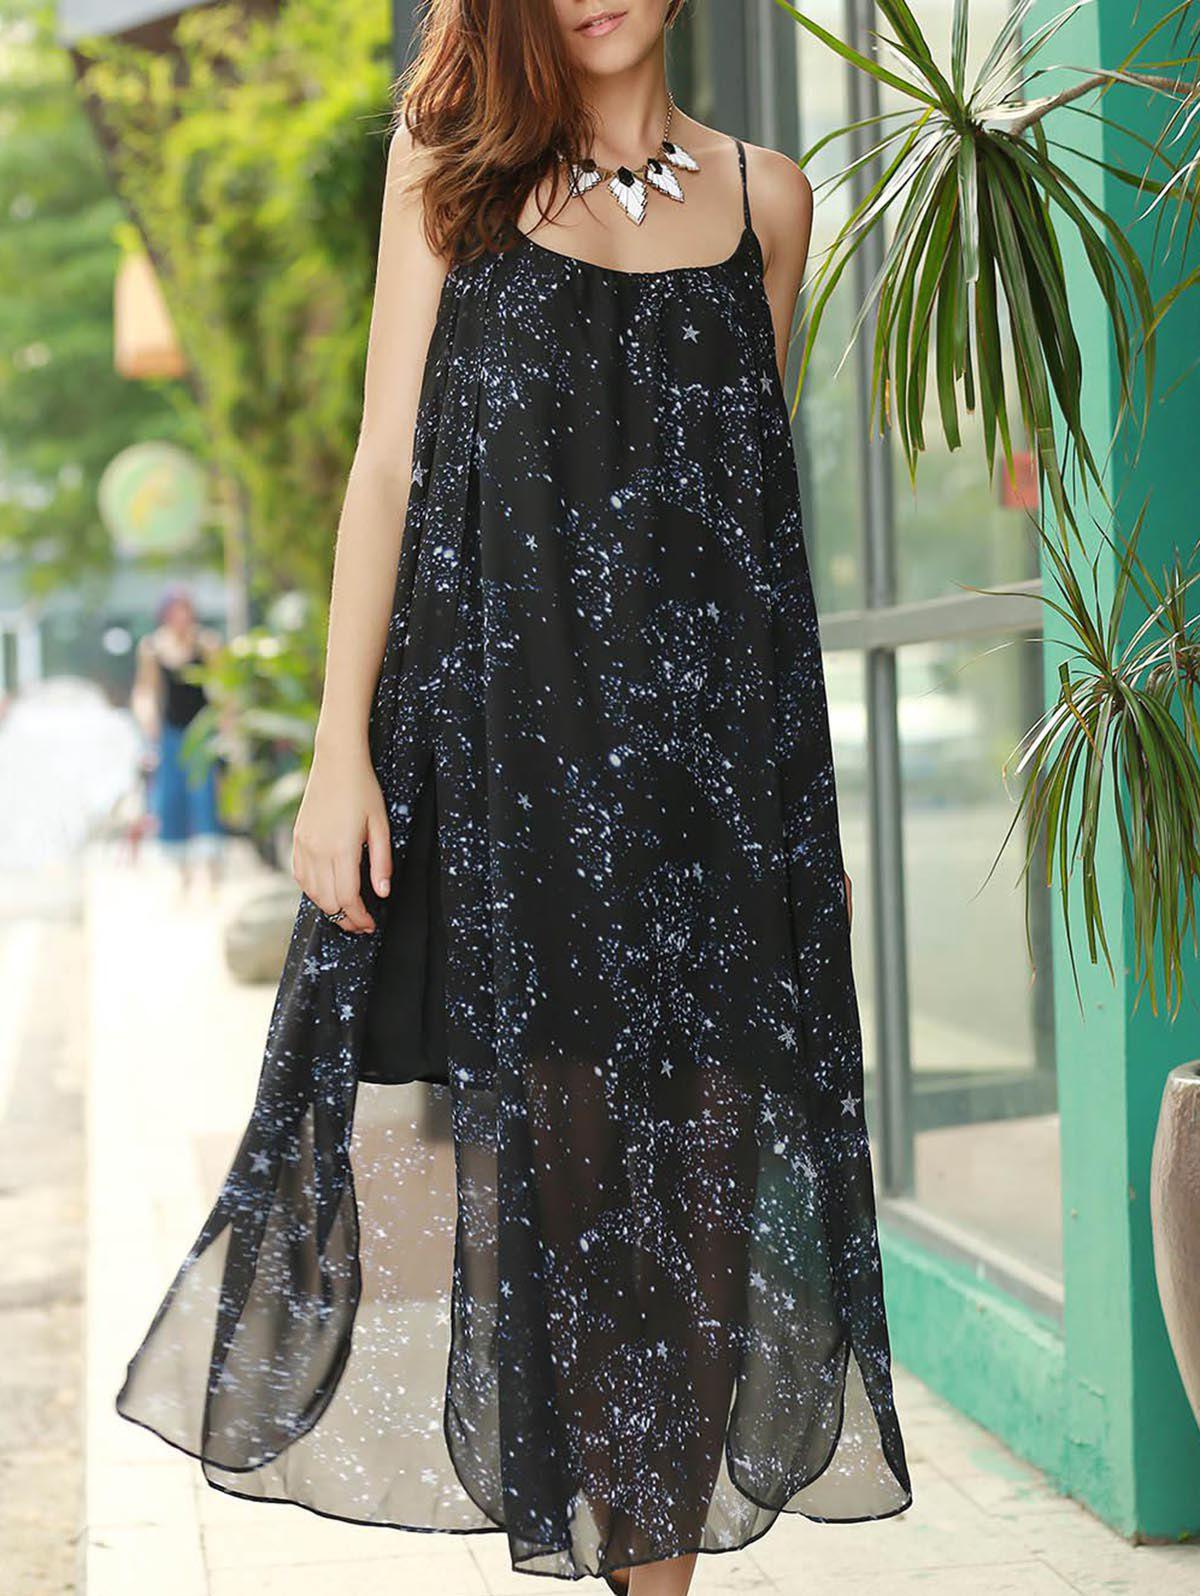 Chic Spaghetti Strap High Slit Star Print Women's Dress - BLACK S